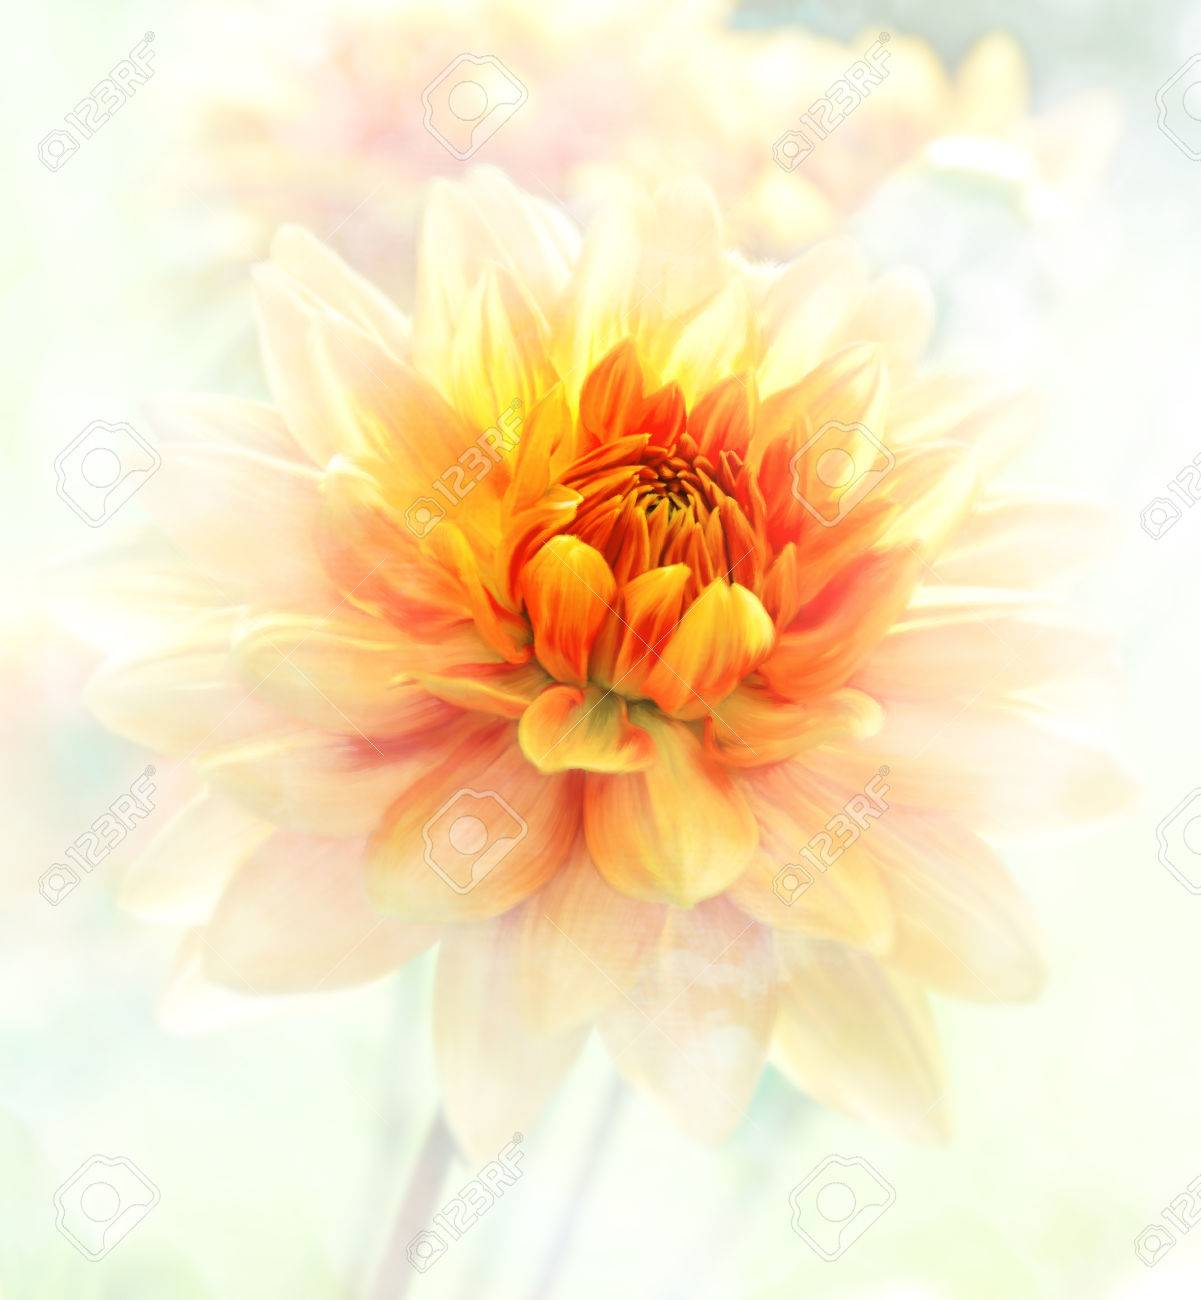 Digital Painting Of Dahlia Flowers Soft Focus Stock Photo Picture And Royalty Free Image Image 37427580